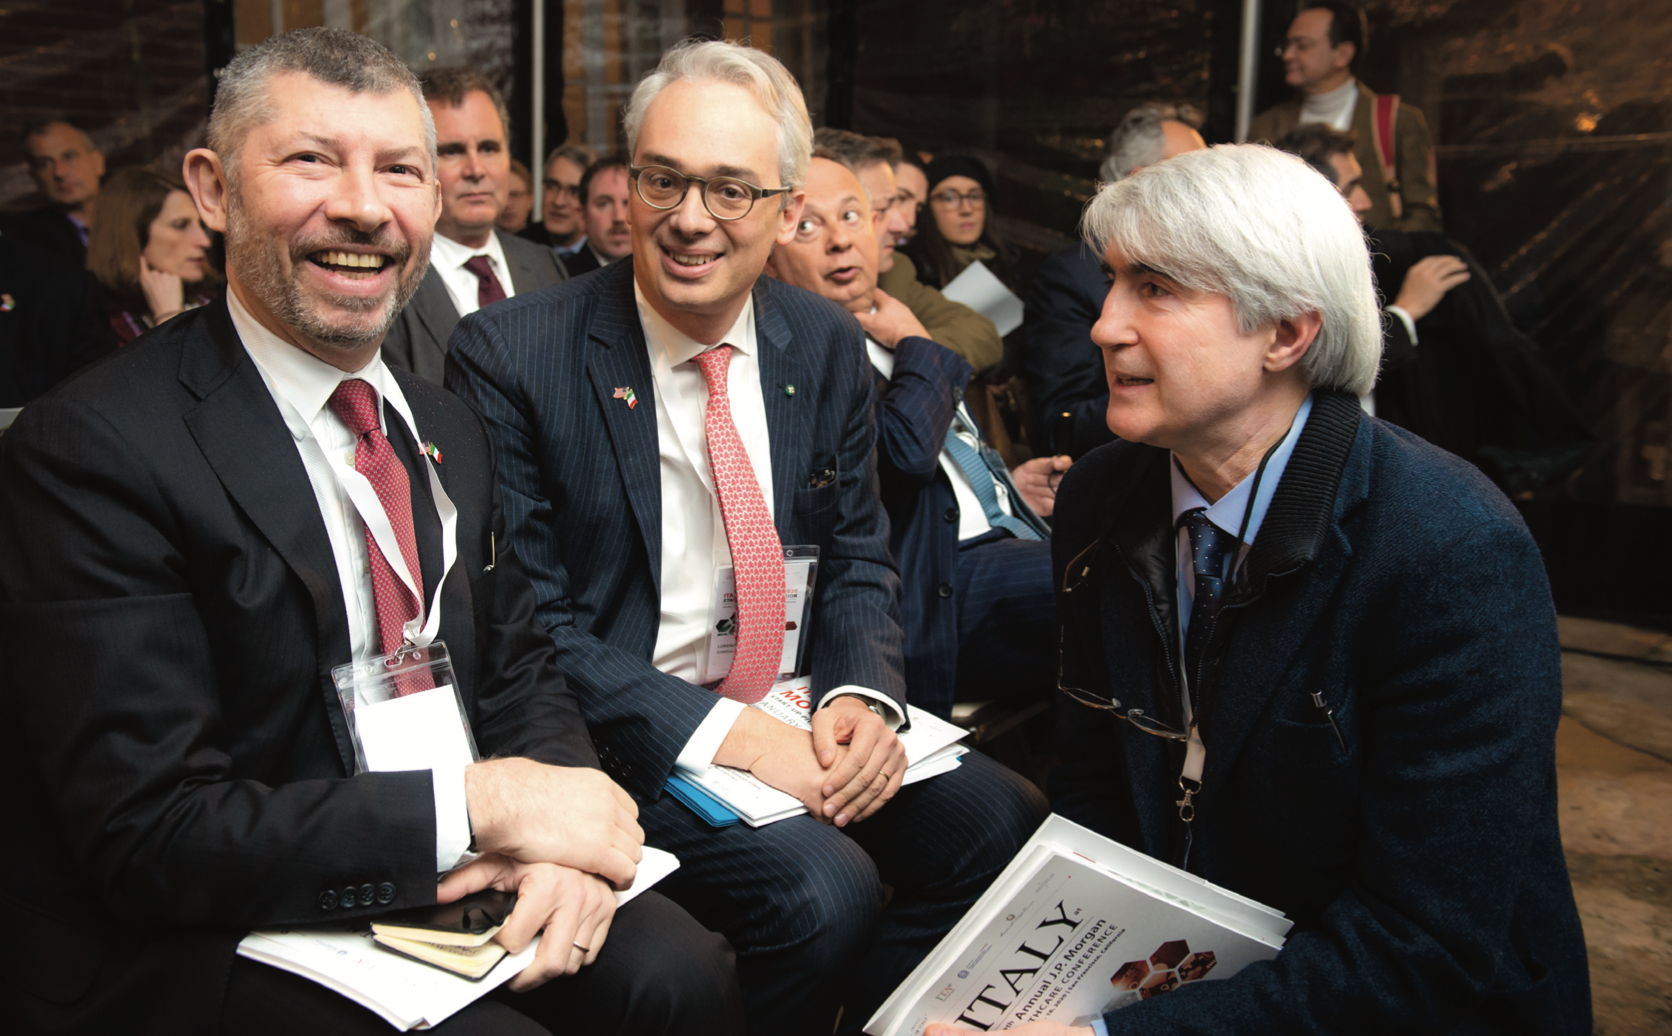 The J.P. Morgan Healthcare Conference in San Francisco opens opportunities for Italian healthcare and pharmaceutical companies